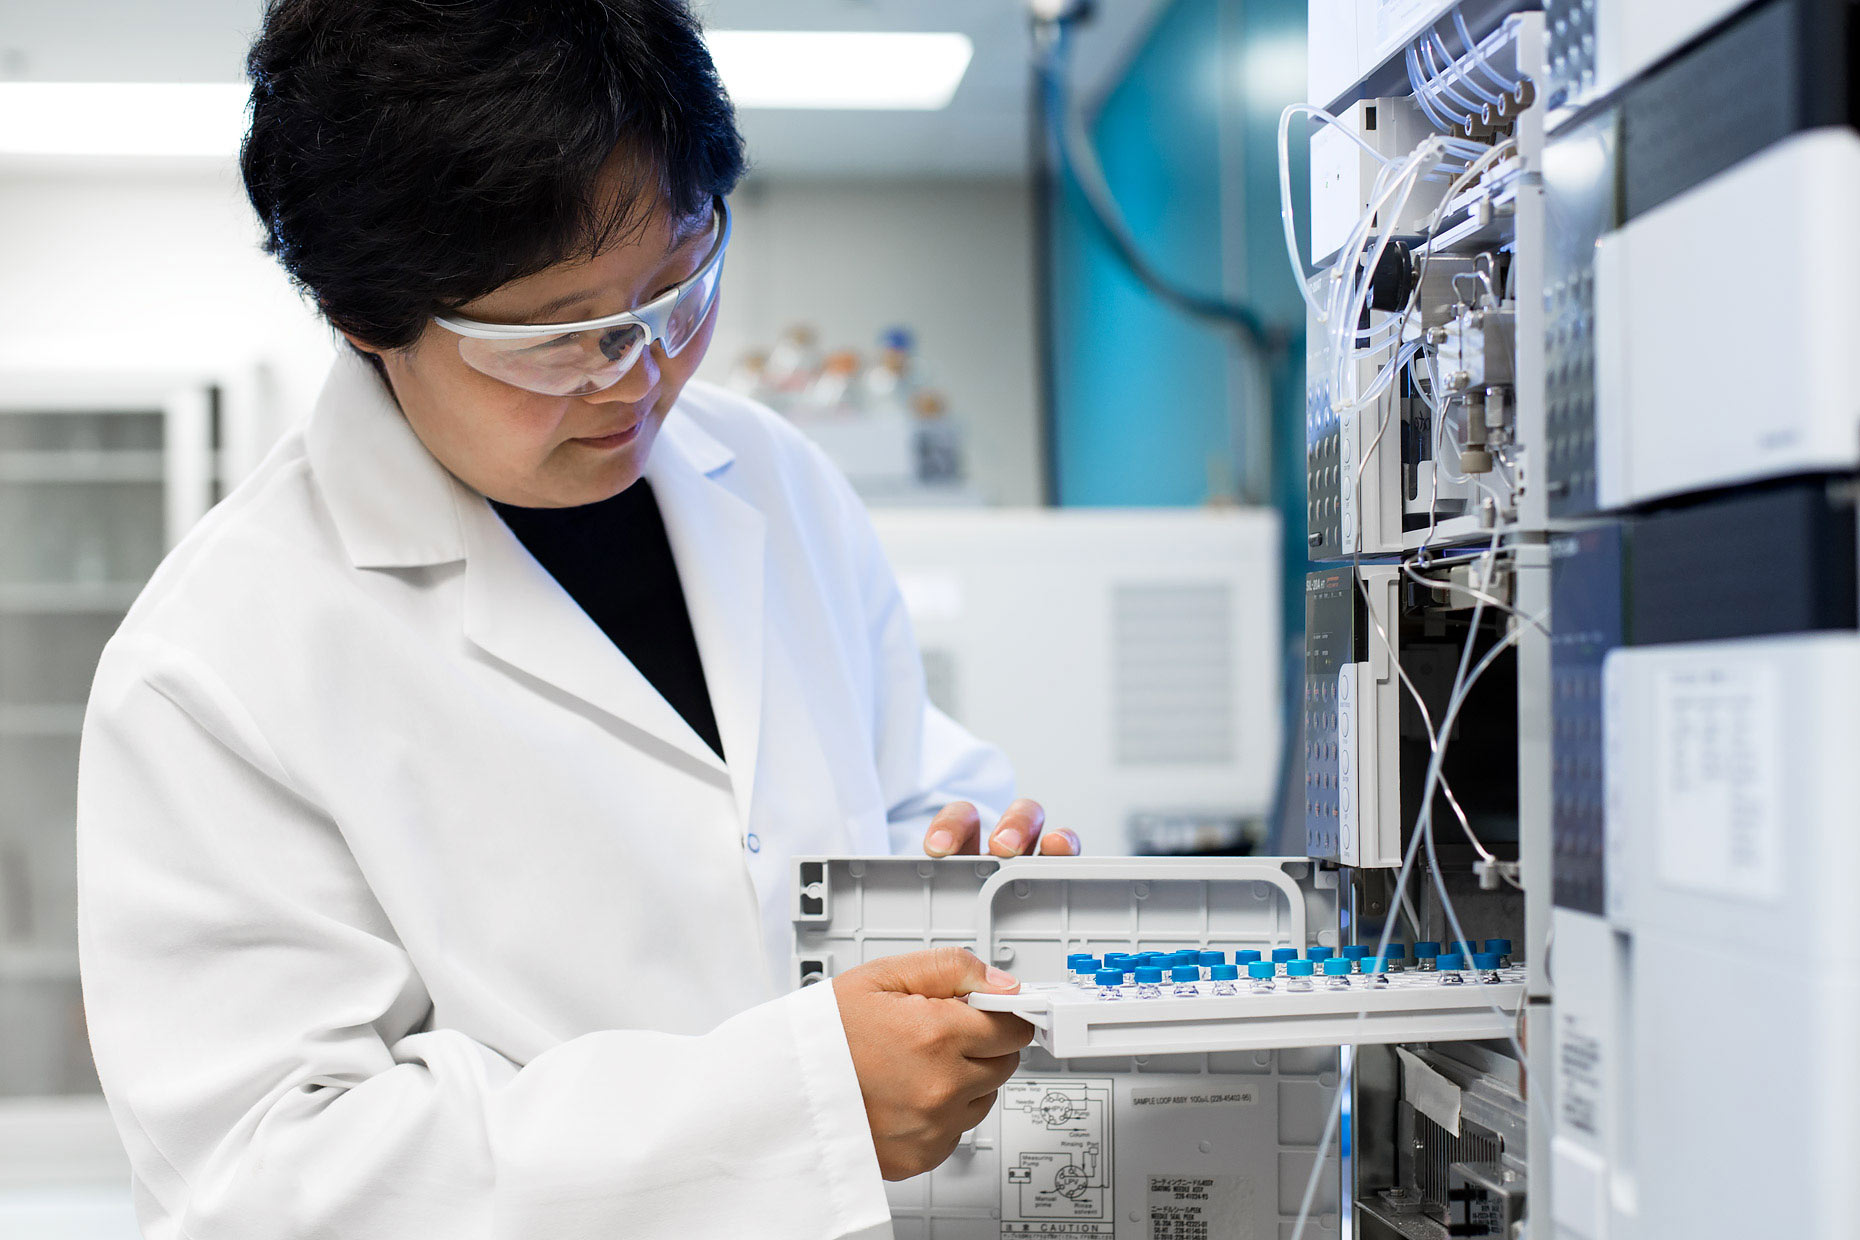 Biochemist removing samples from a protein sequencer | Scott Gable industrial photographer